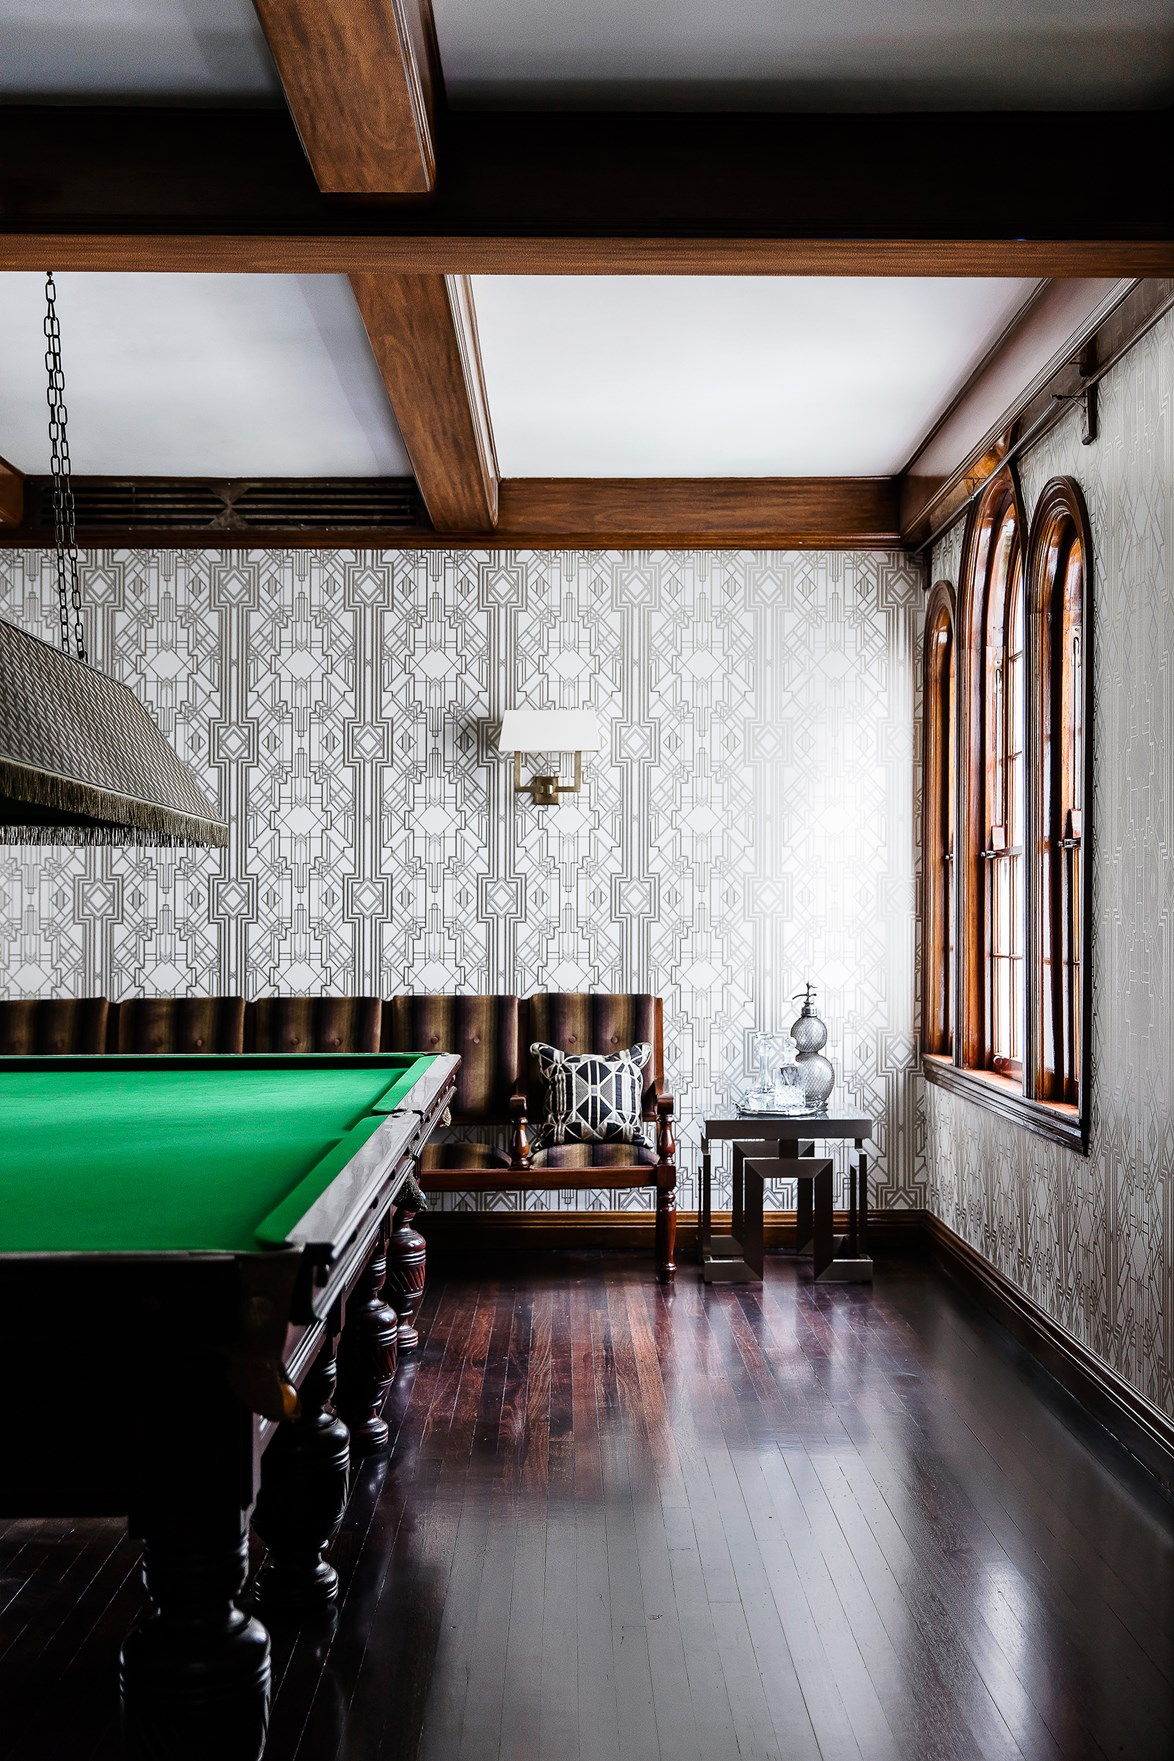 Taking design cues from it's heritage, the rumpus room in this early [20th-century home](http://www.homestolove.com.au/a-cheerful-and-kid-friendly-home-renovation-3774), has been wallpapered in an art-deco style print. When paired with exposed beams and trimmings, this style of wallpaper creates a sense of grandeur and old-world charm.